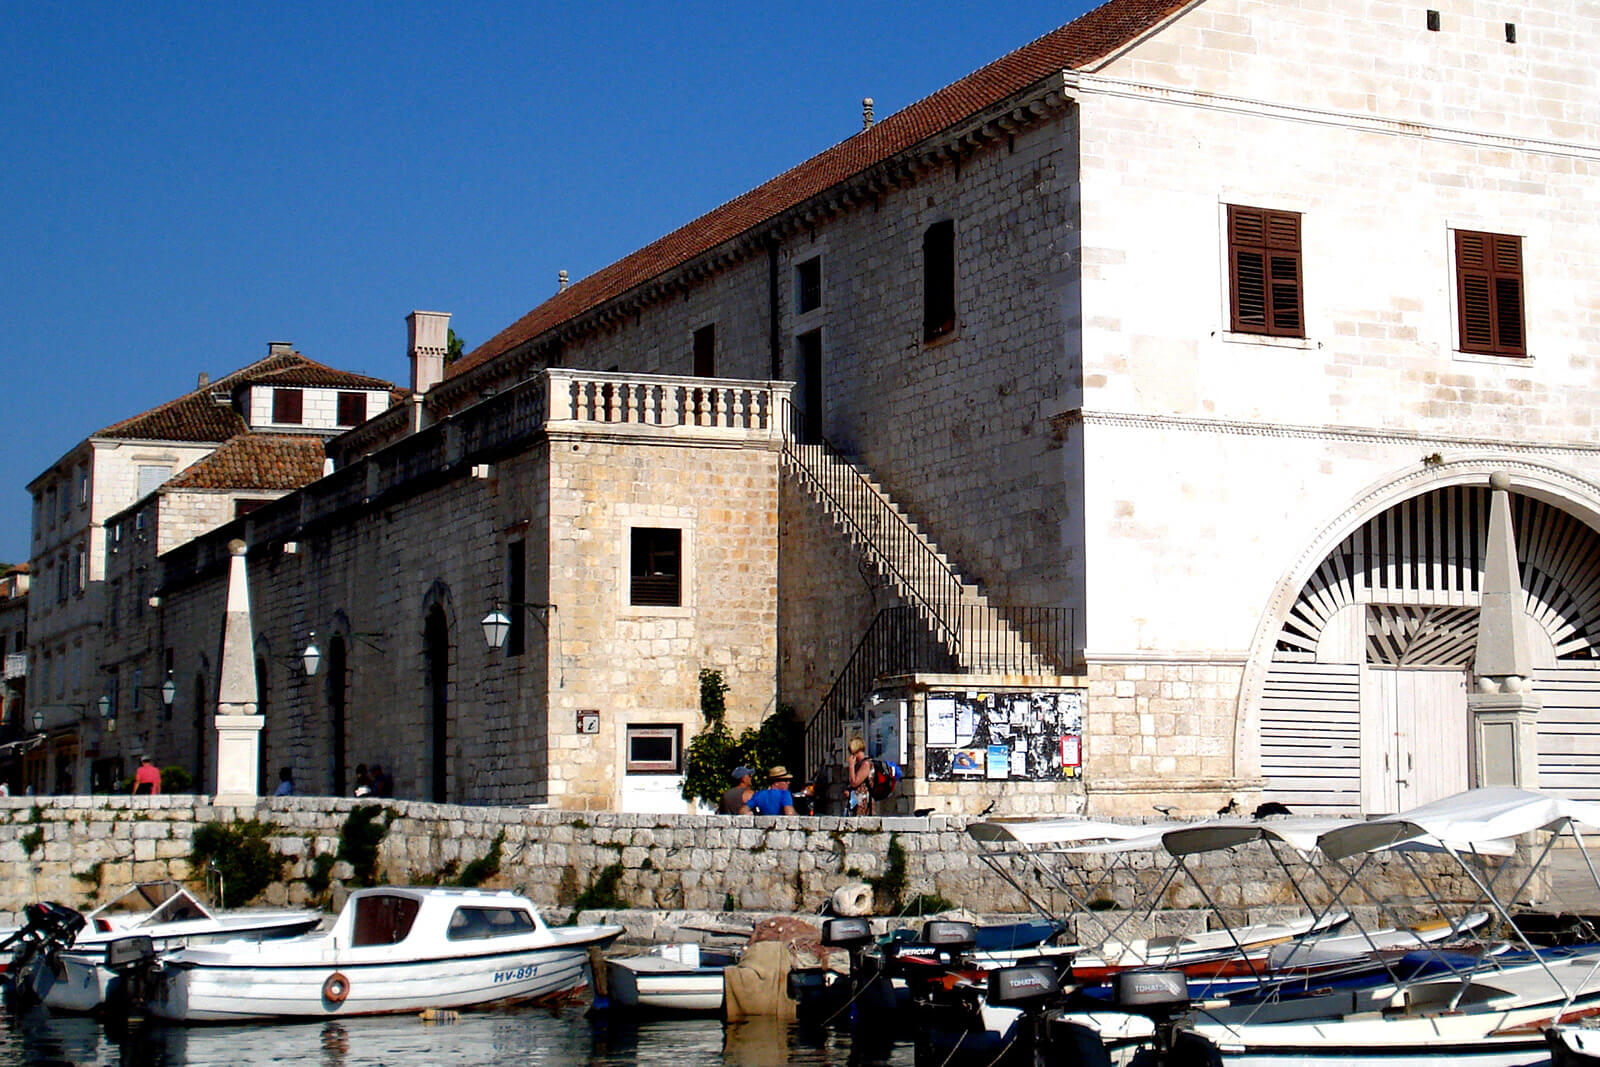 Hvar's Theatre & Arsenal